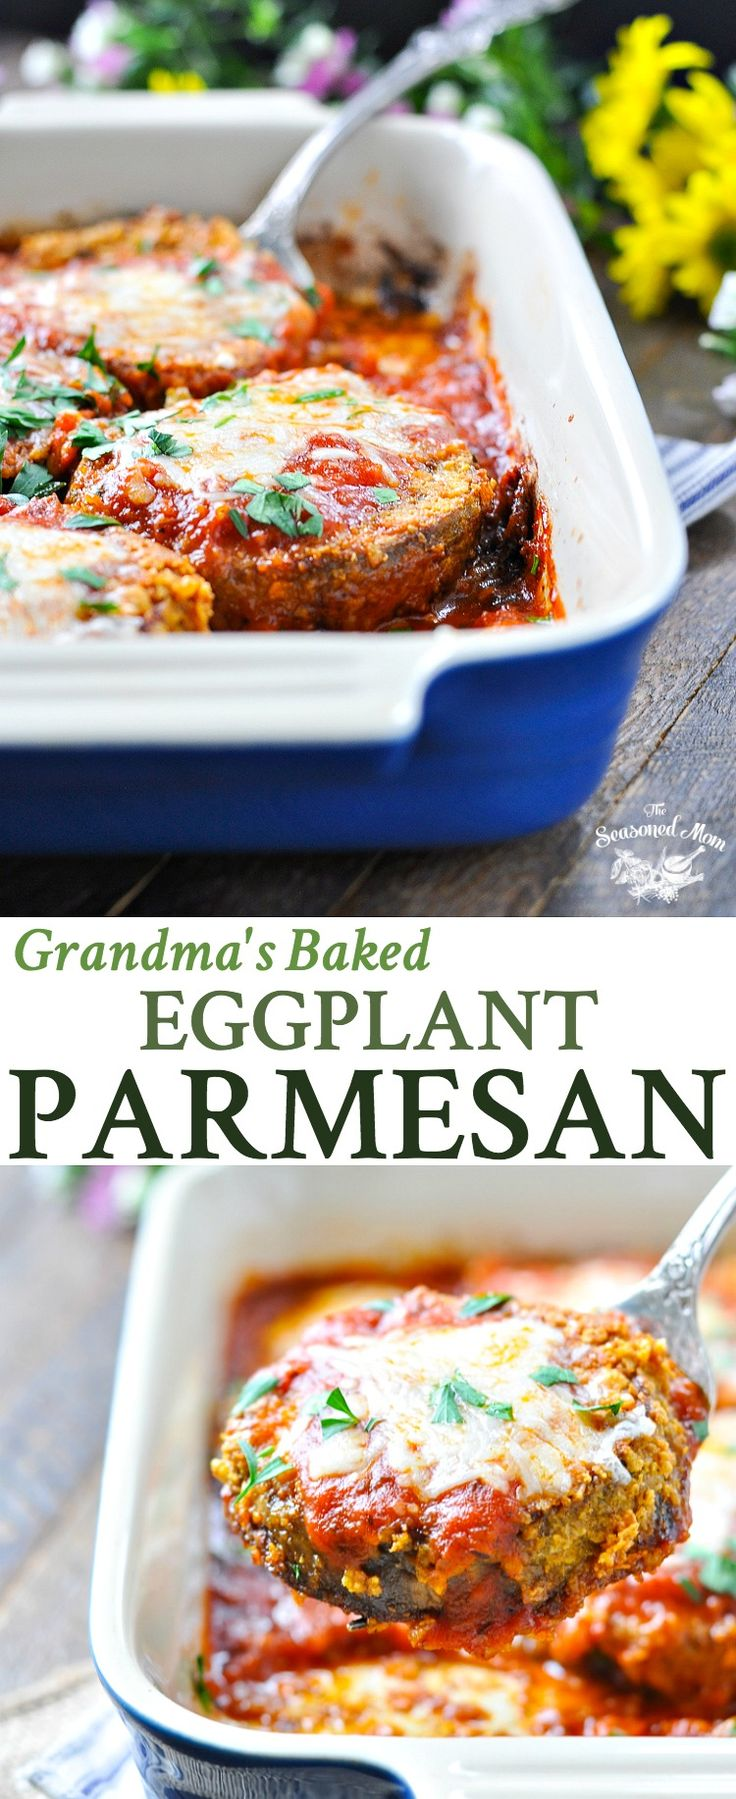 Grandma's Baked Eggplant Parmesan | Vegetarian Recipes Easy | Vegetarian Meals | Easy Dinner Recipes | Dinner Ideas | Italian Recipes | Italian Food | Healthy Recipes | Dinner Recipes Healthy | Healthy Dinner Ideas | Healthy Dinners